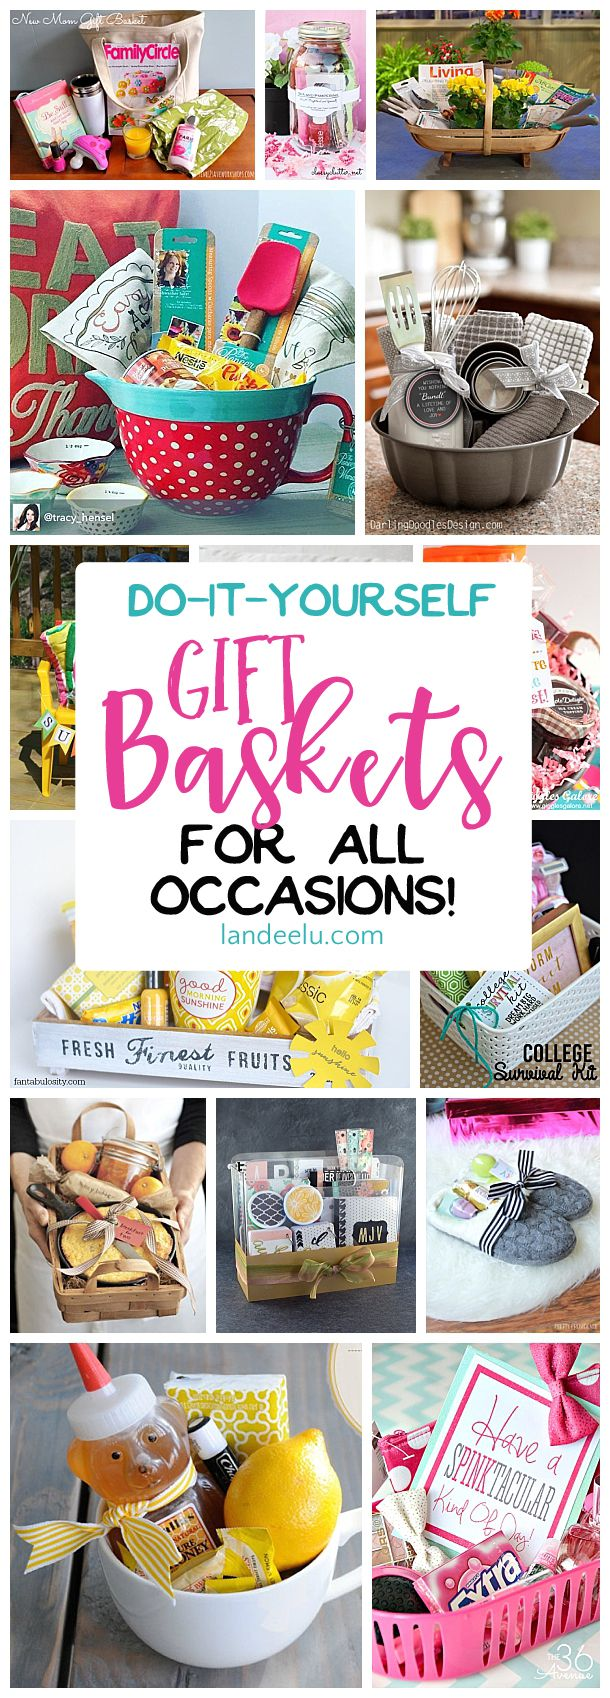 237 best gifts gift baskets images on pinterest gift basket ideas do it yourself gift basket ideas for all occasions solutioingenieria Choice Image